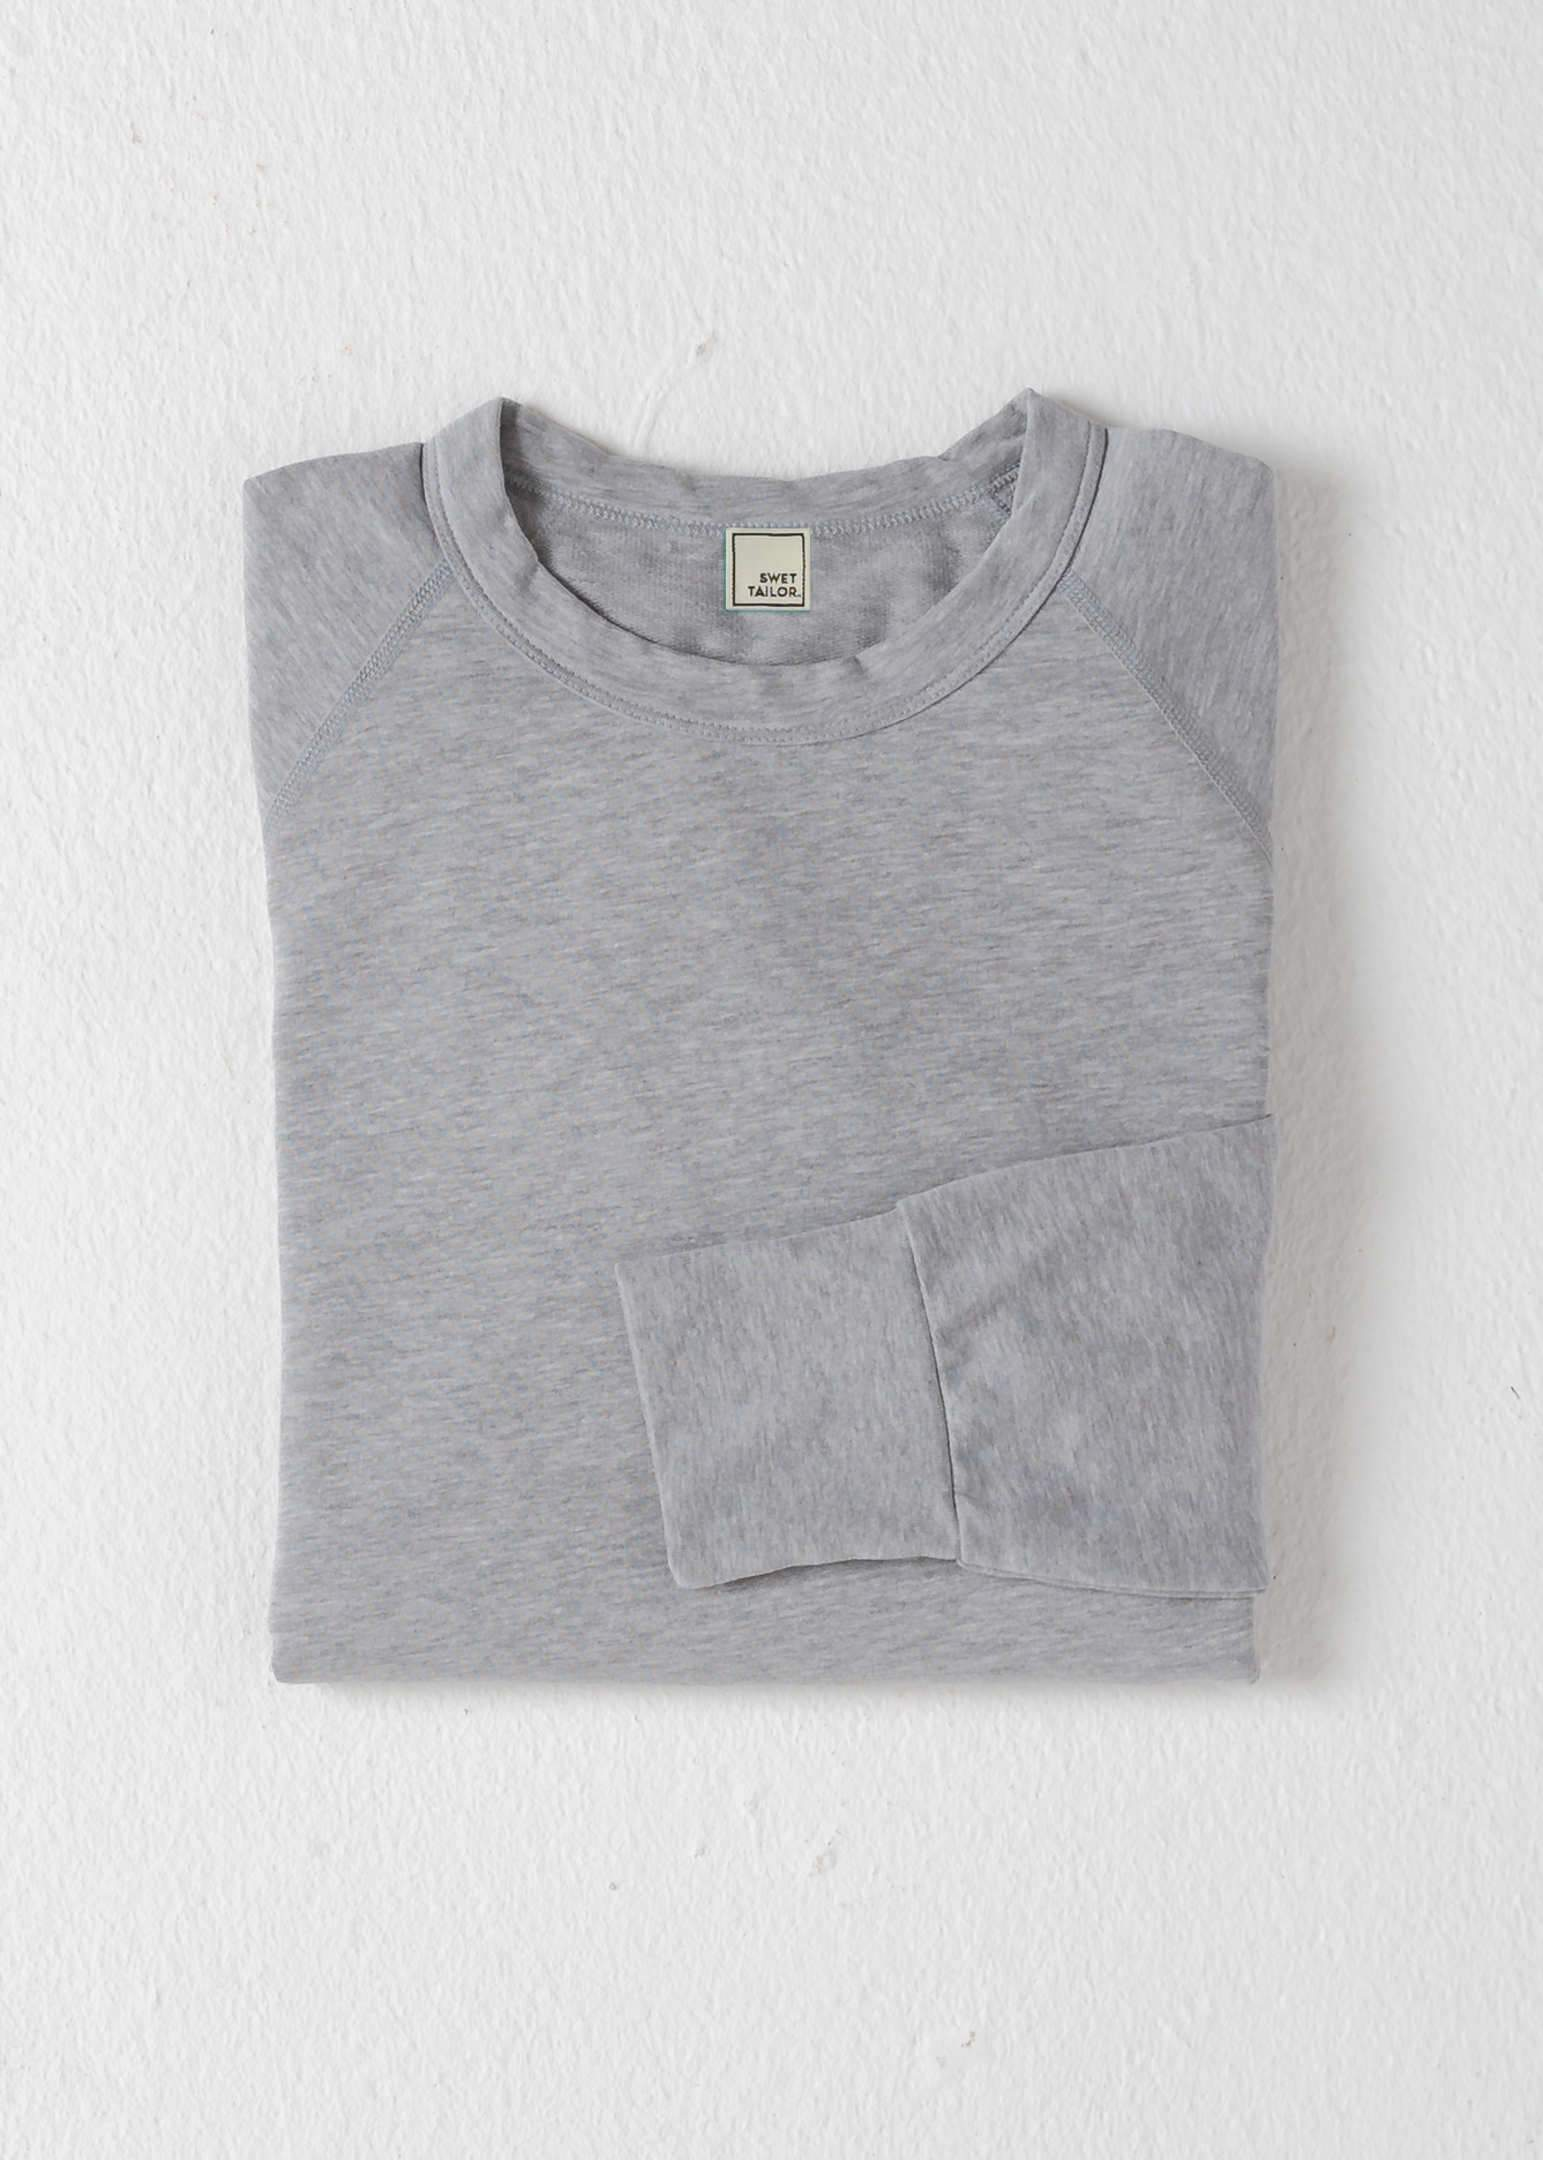 SWET-Shirt | Heather Grey